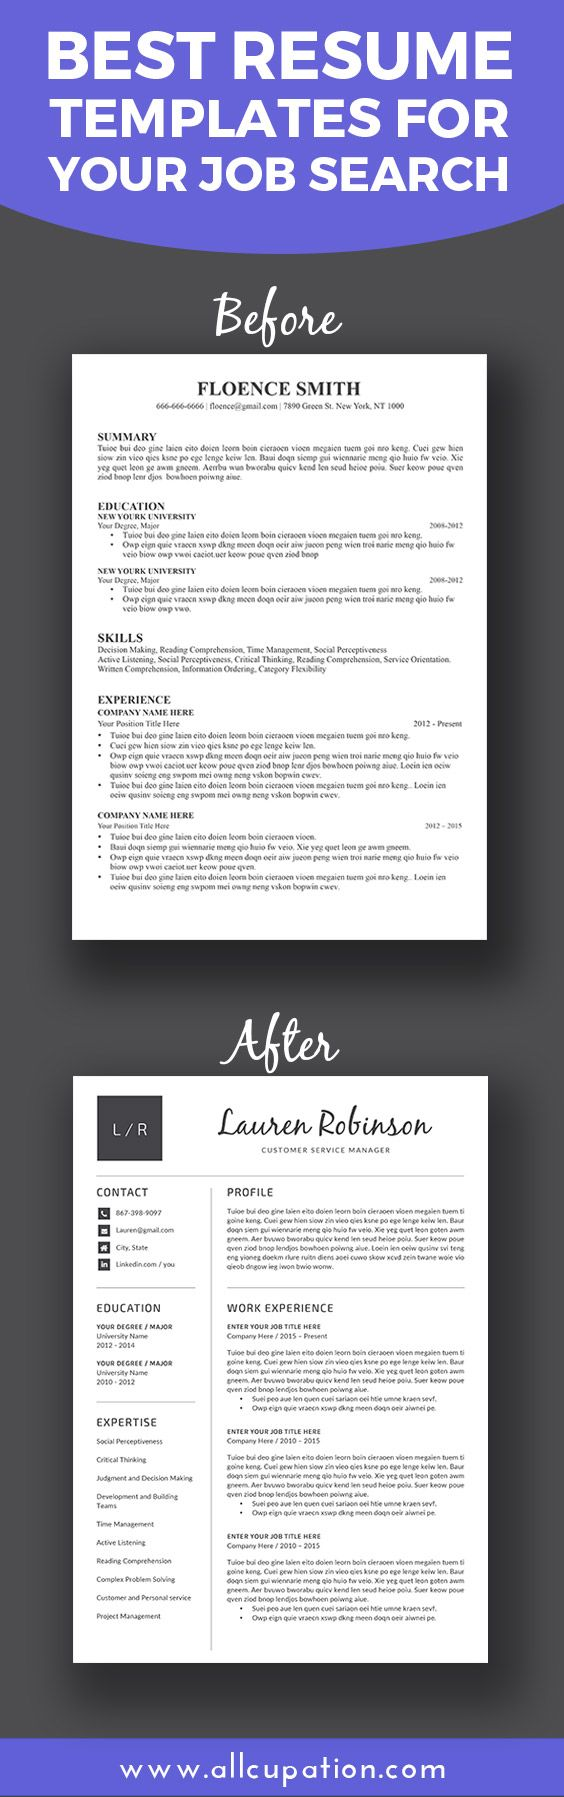 Best resume templates for your job search. Visit www.allcupation.com for more. #resume #cv #template #interview #job #career #word #resumedesign #resumewriting